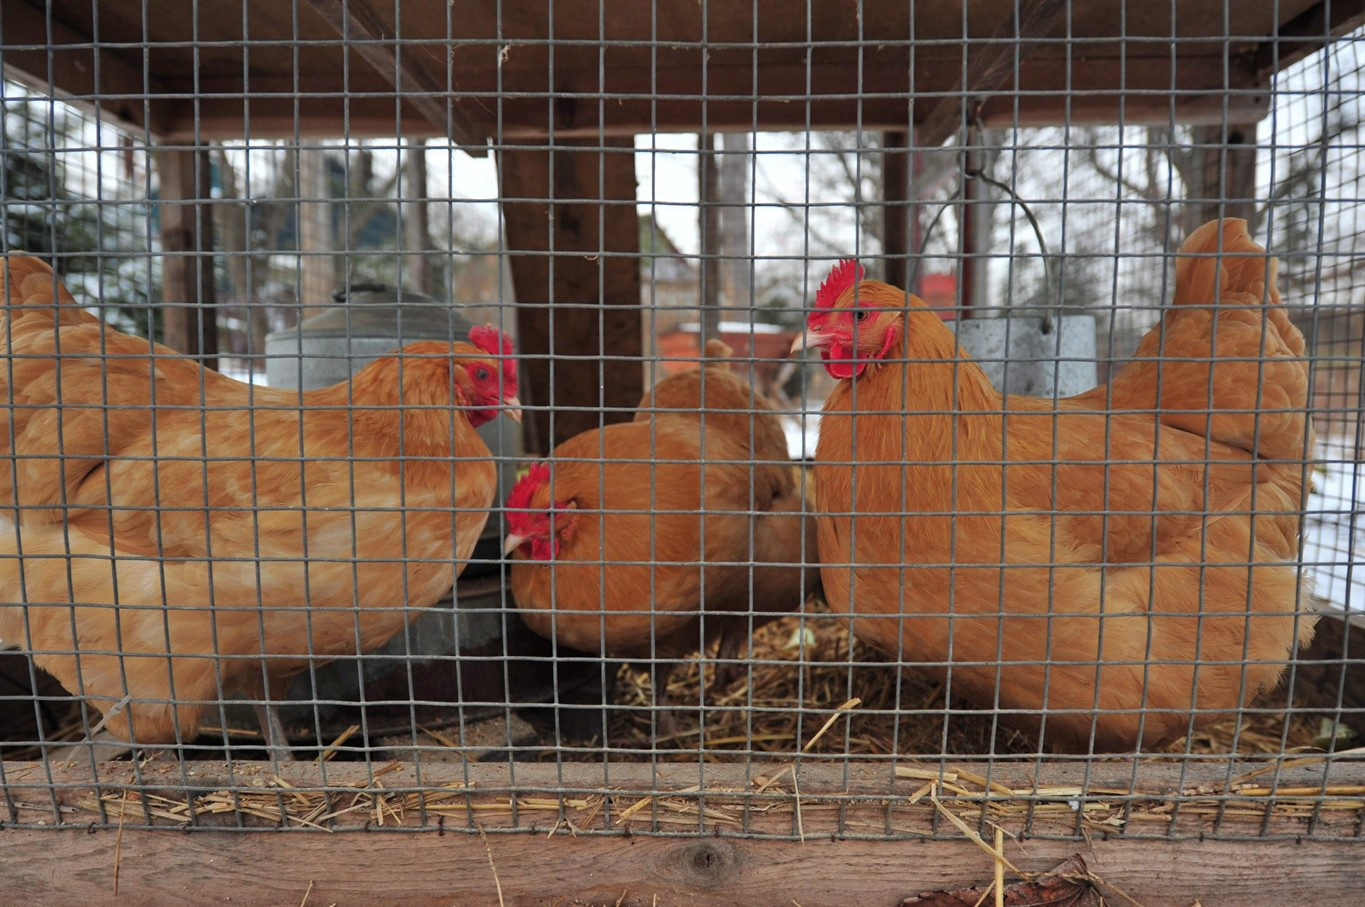 backyard chicken trend leads to more disease infections citynews